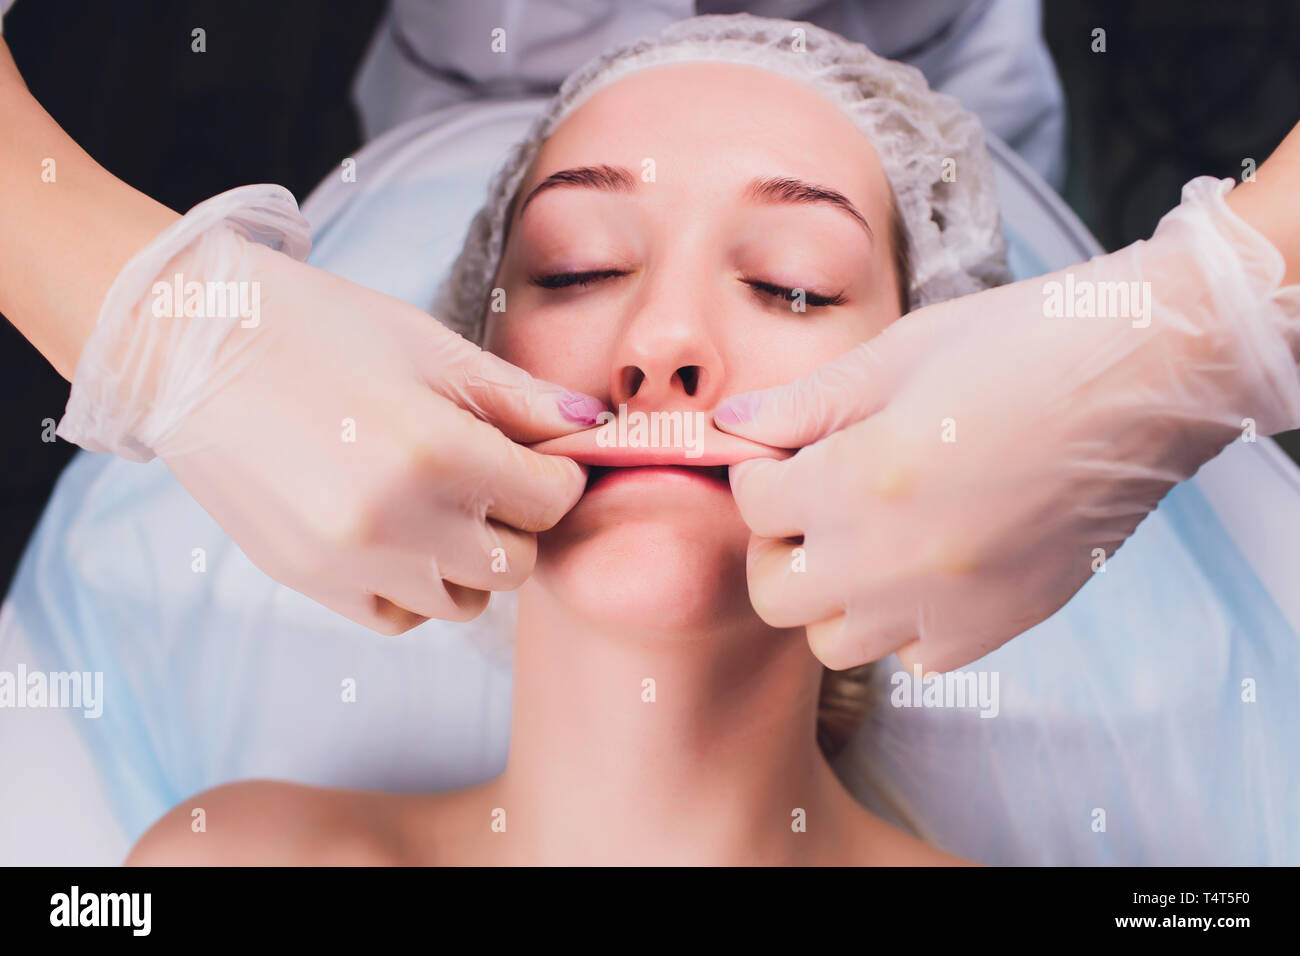 cosmetologist makes a buccal massage of the patient's facial muscles - Stock Image